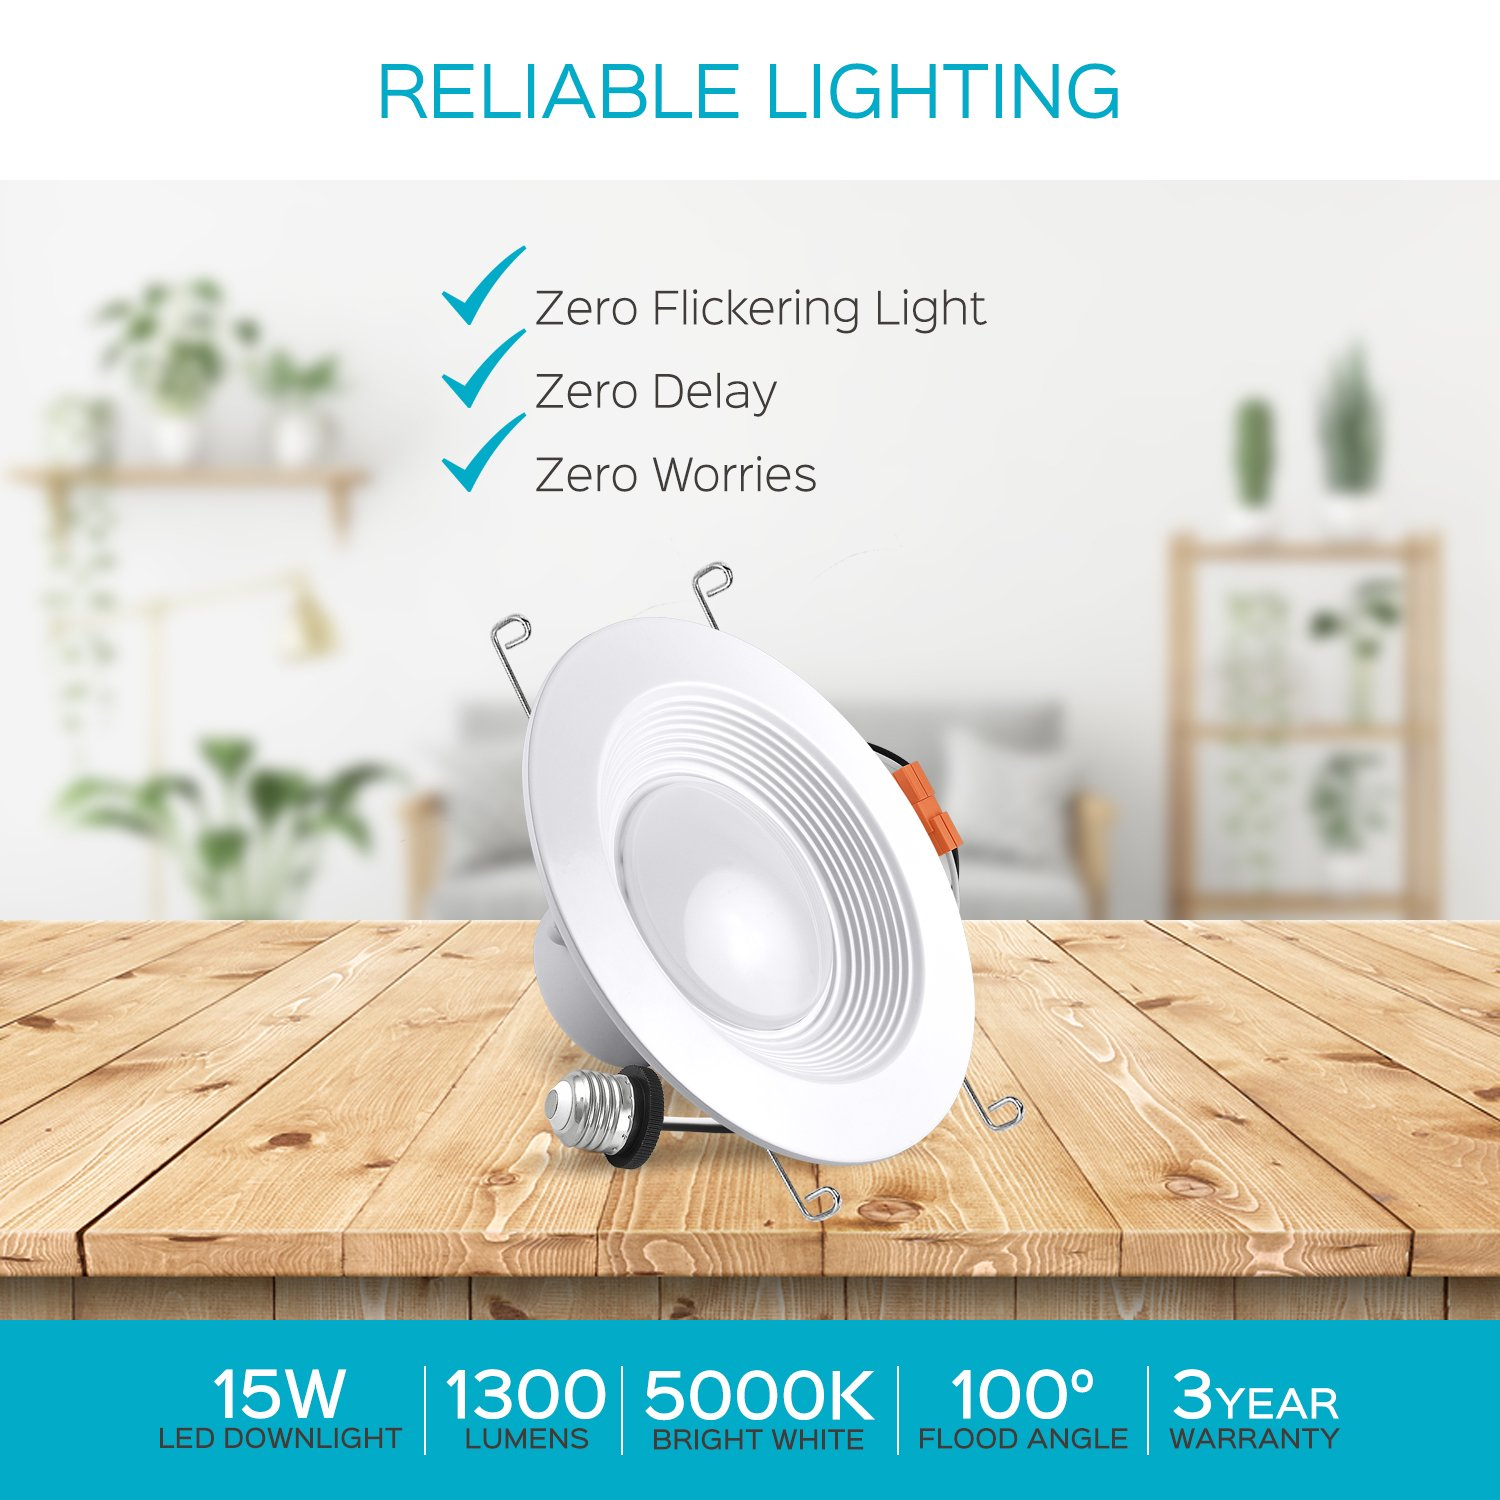 Luxrite 5/6 Inch LED Recessed Light, 15W (120W Equivalent), 5000K Bright White, 1300lm, Dimmable, Retrofit LED Can Light, Energy Star & UL, Damp Rated - Perfect for Kitchen, Bathroom, Office (4 Pack) by Luxrite (Image #8)